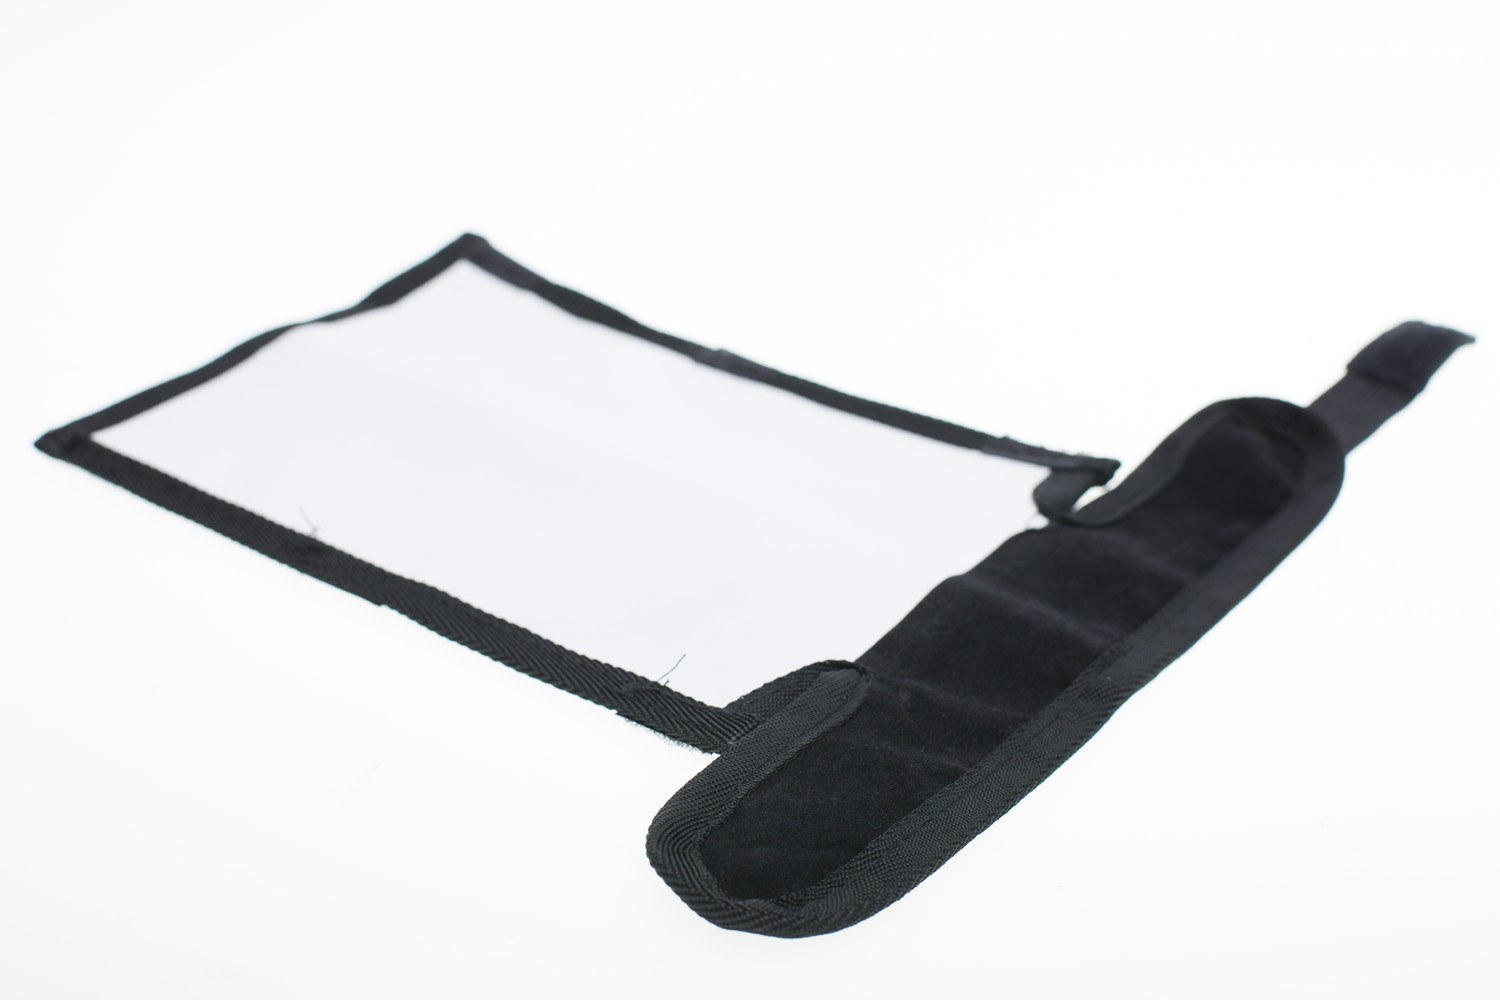 StudioPRO Bend Flash Reflective Bounce Card Flexible Flag -  - 7